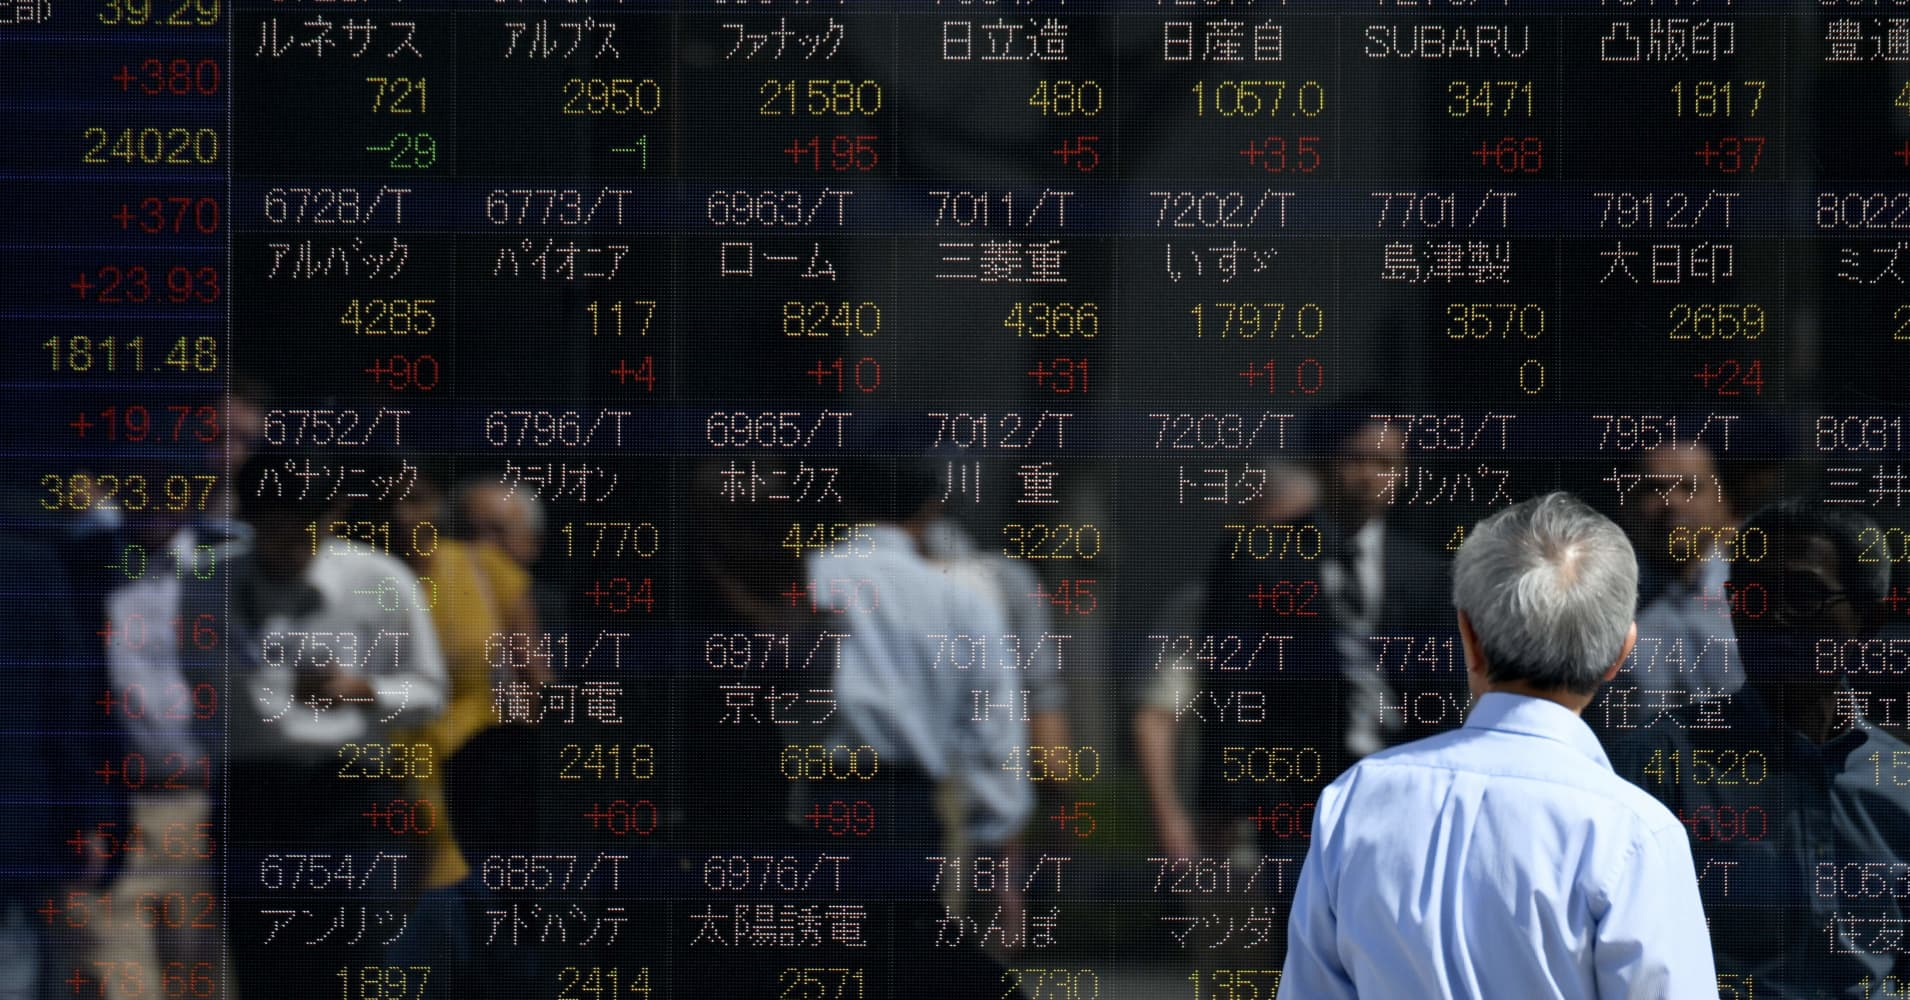 South Korean stocks and won sell off after Trump-Kim summit is cut short without agreement